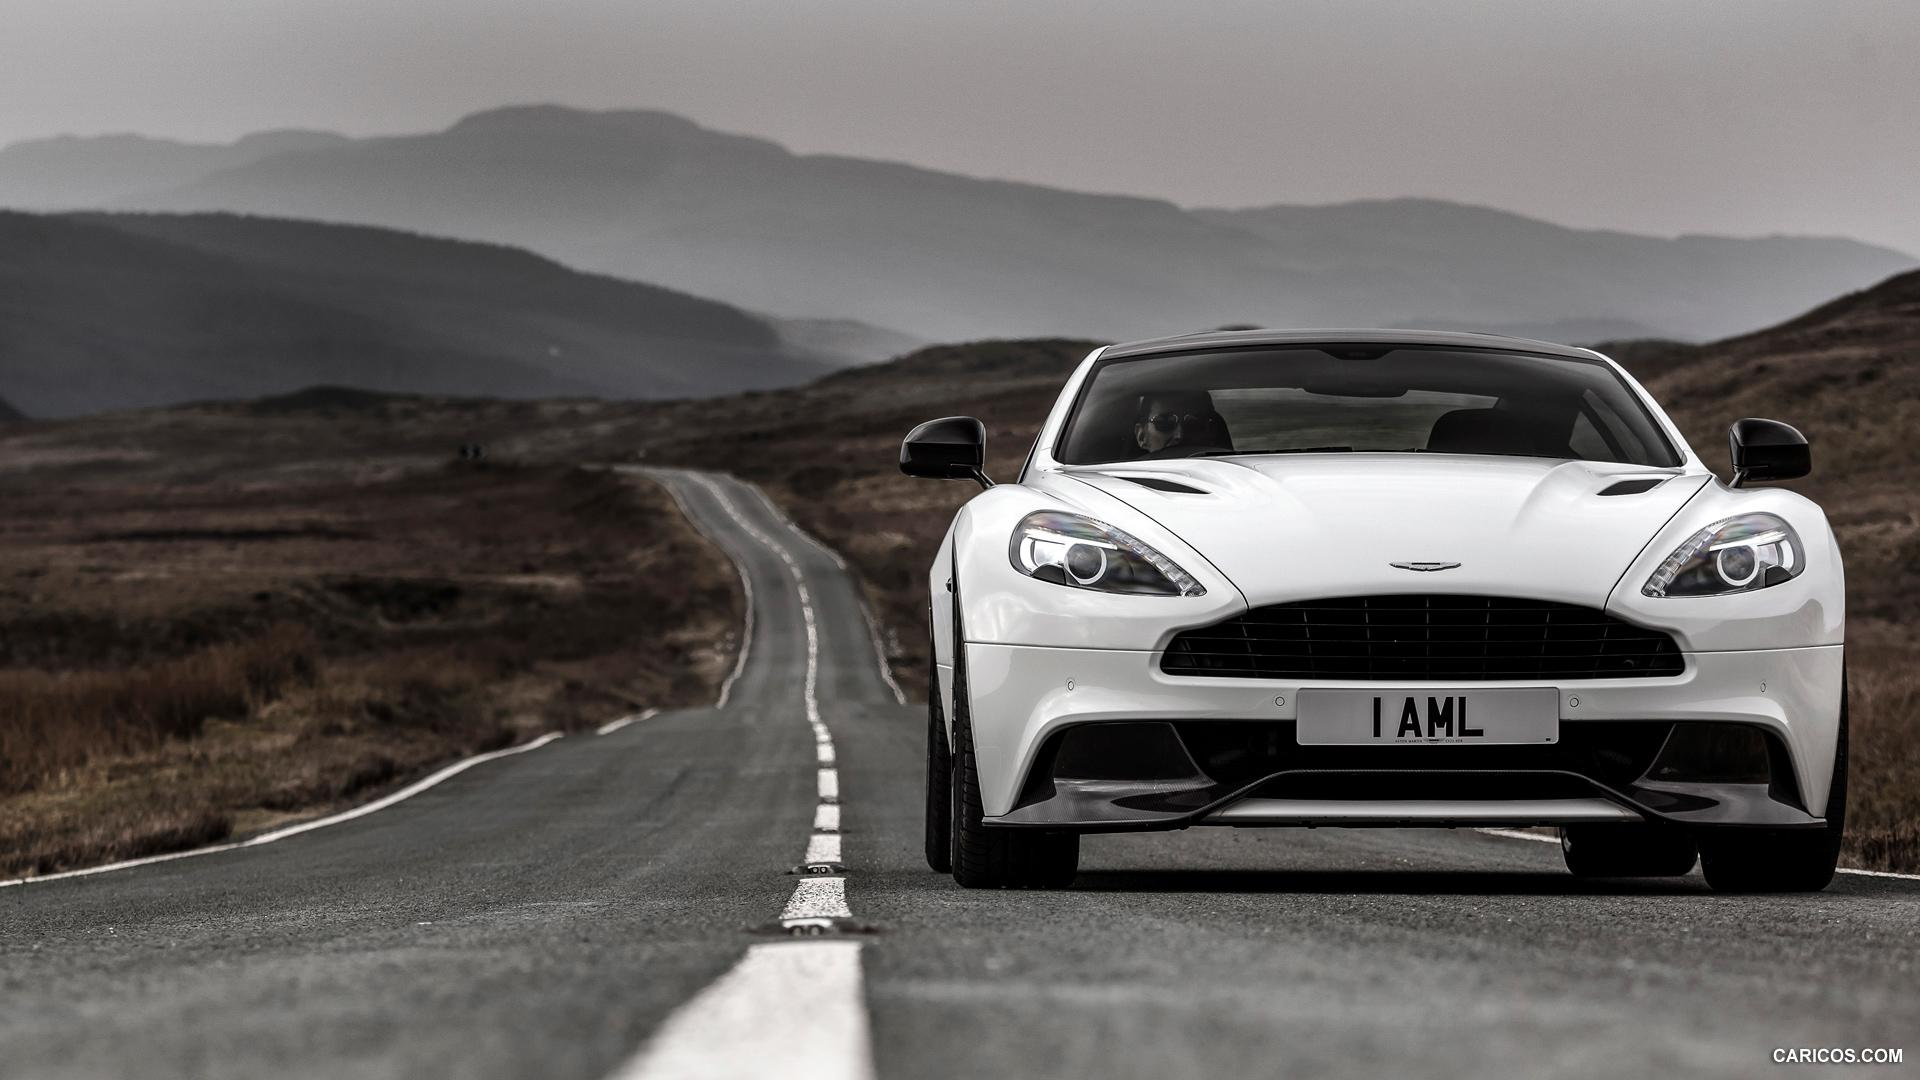 2015 Aston Martin Vanquish Carbon White Edition - Front | HD ...